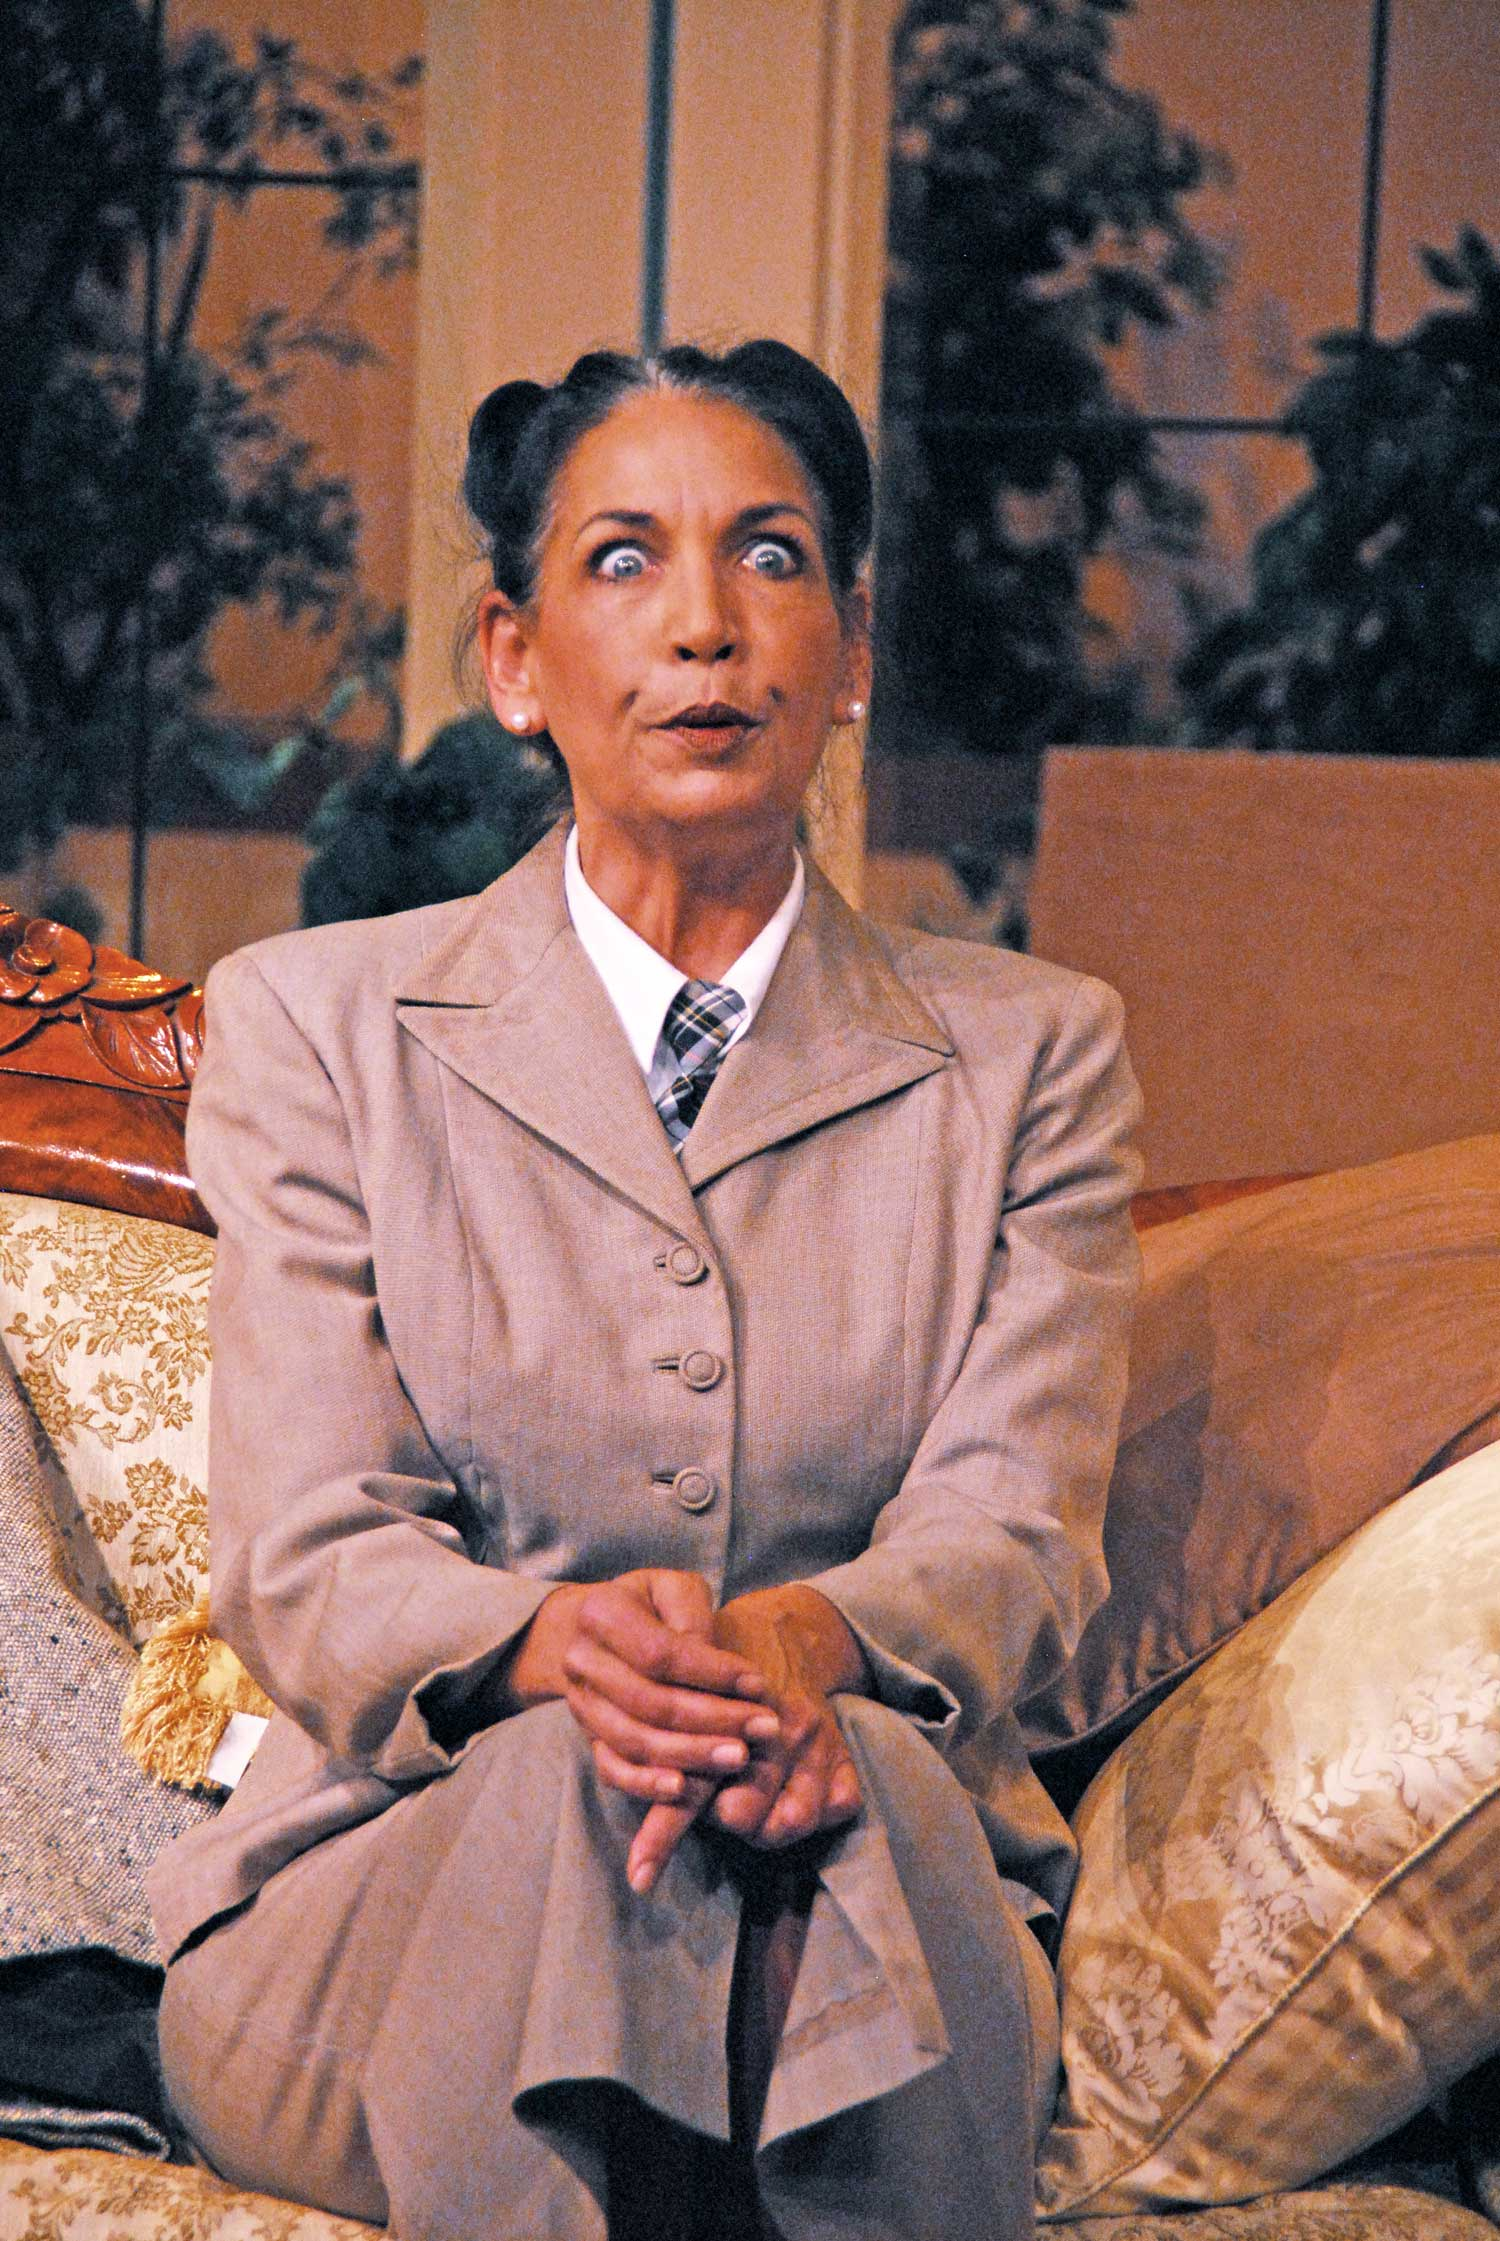 Lisa Olsen in See How They Run at Lakewood Theatre Company, May 4 - June 10, 2012